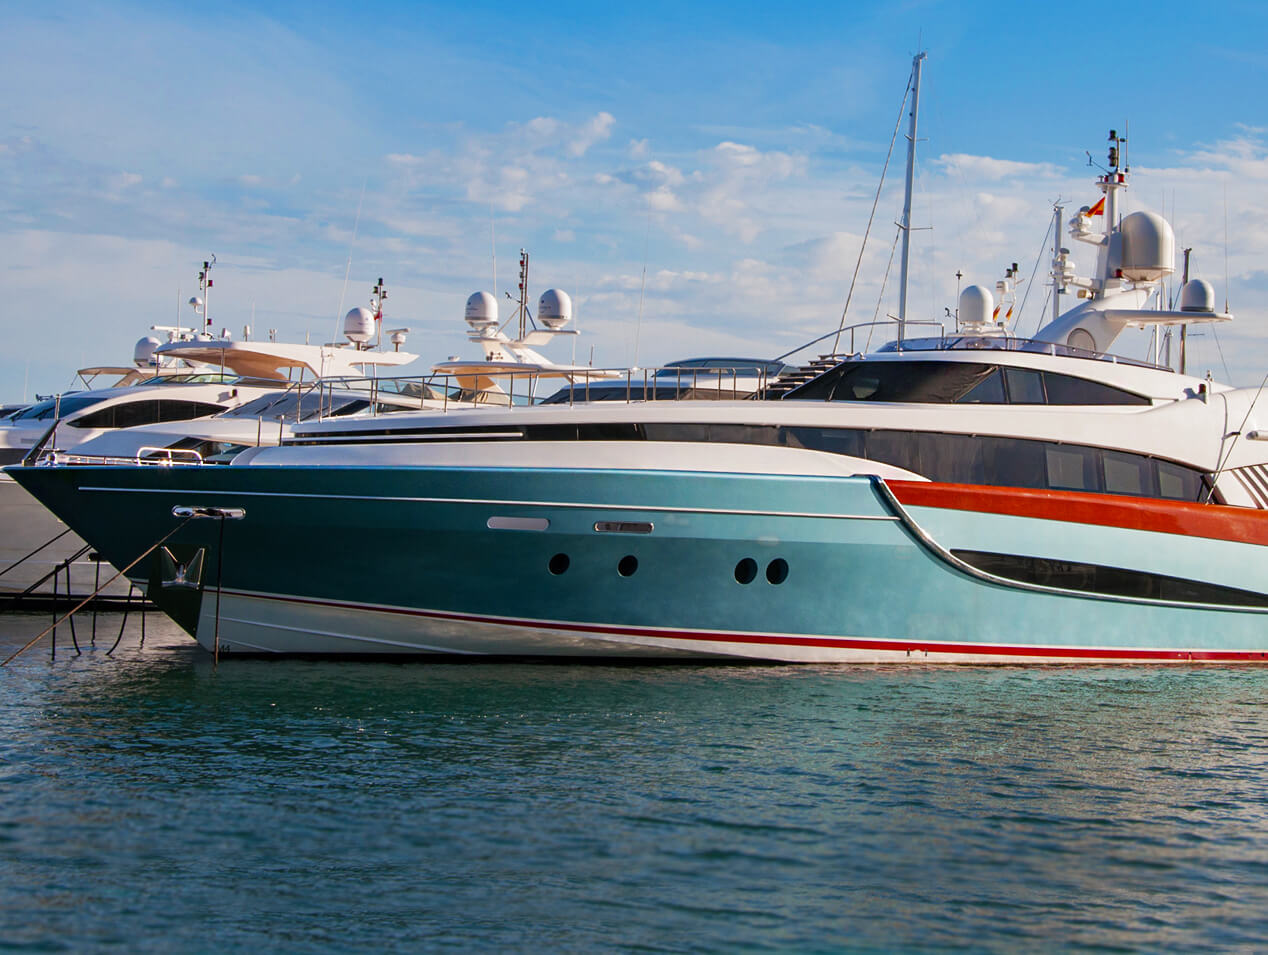 2020 Boat Hull Color Trends